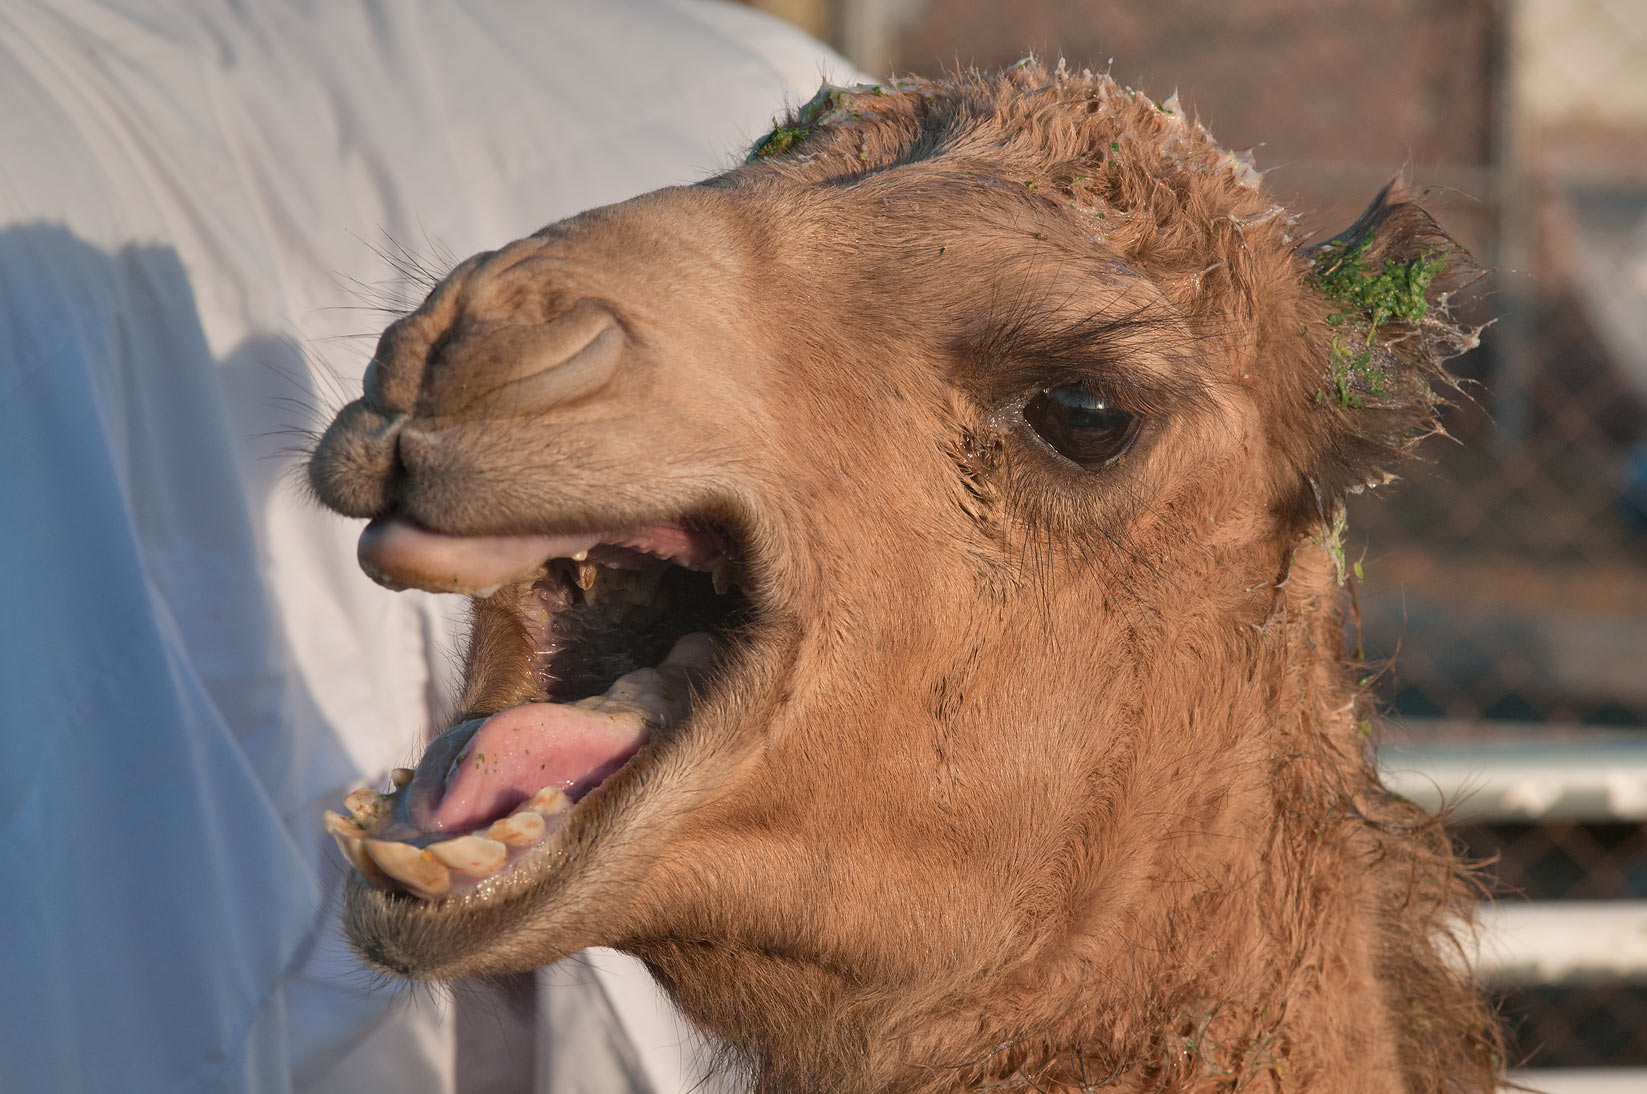 Crying camel in Camel Market (Souq), Wholesale Markets area. Doha, Qatar